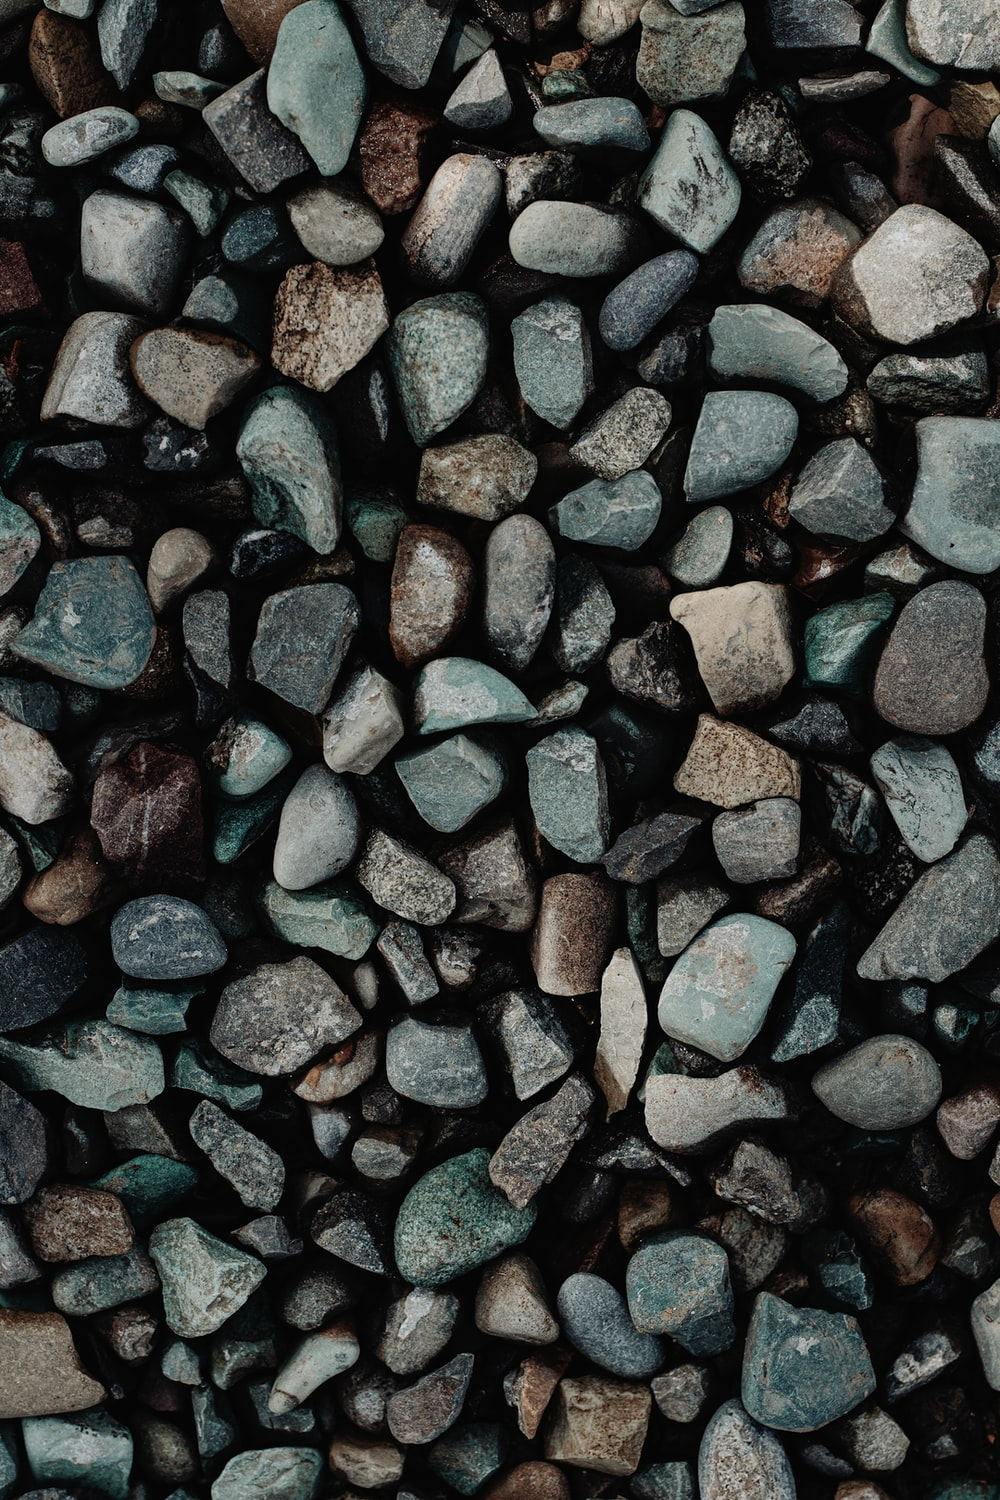 brown and black stones on red surface